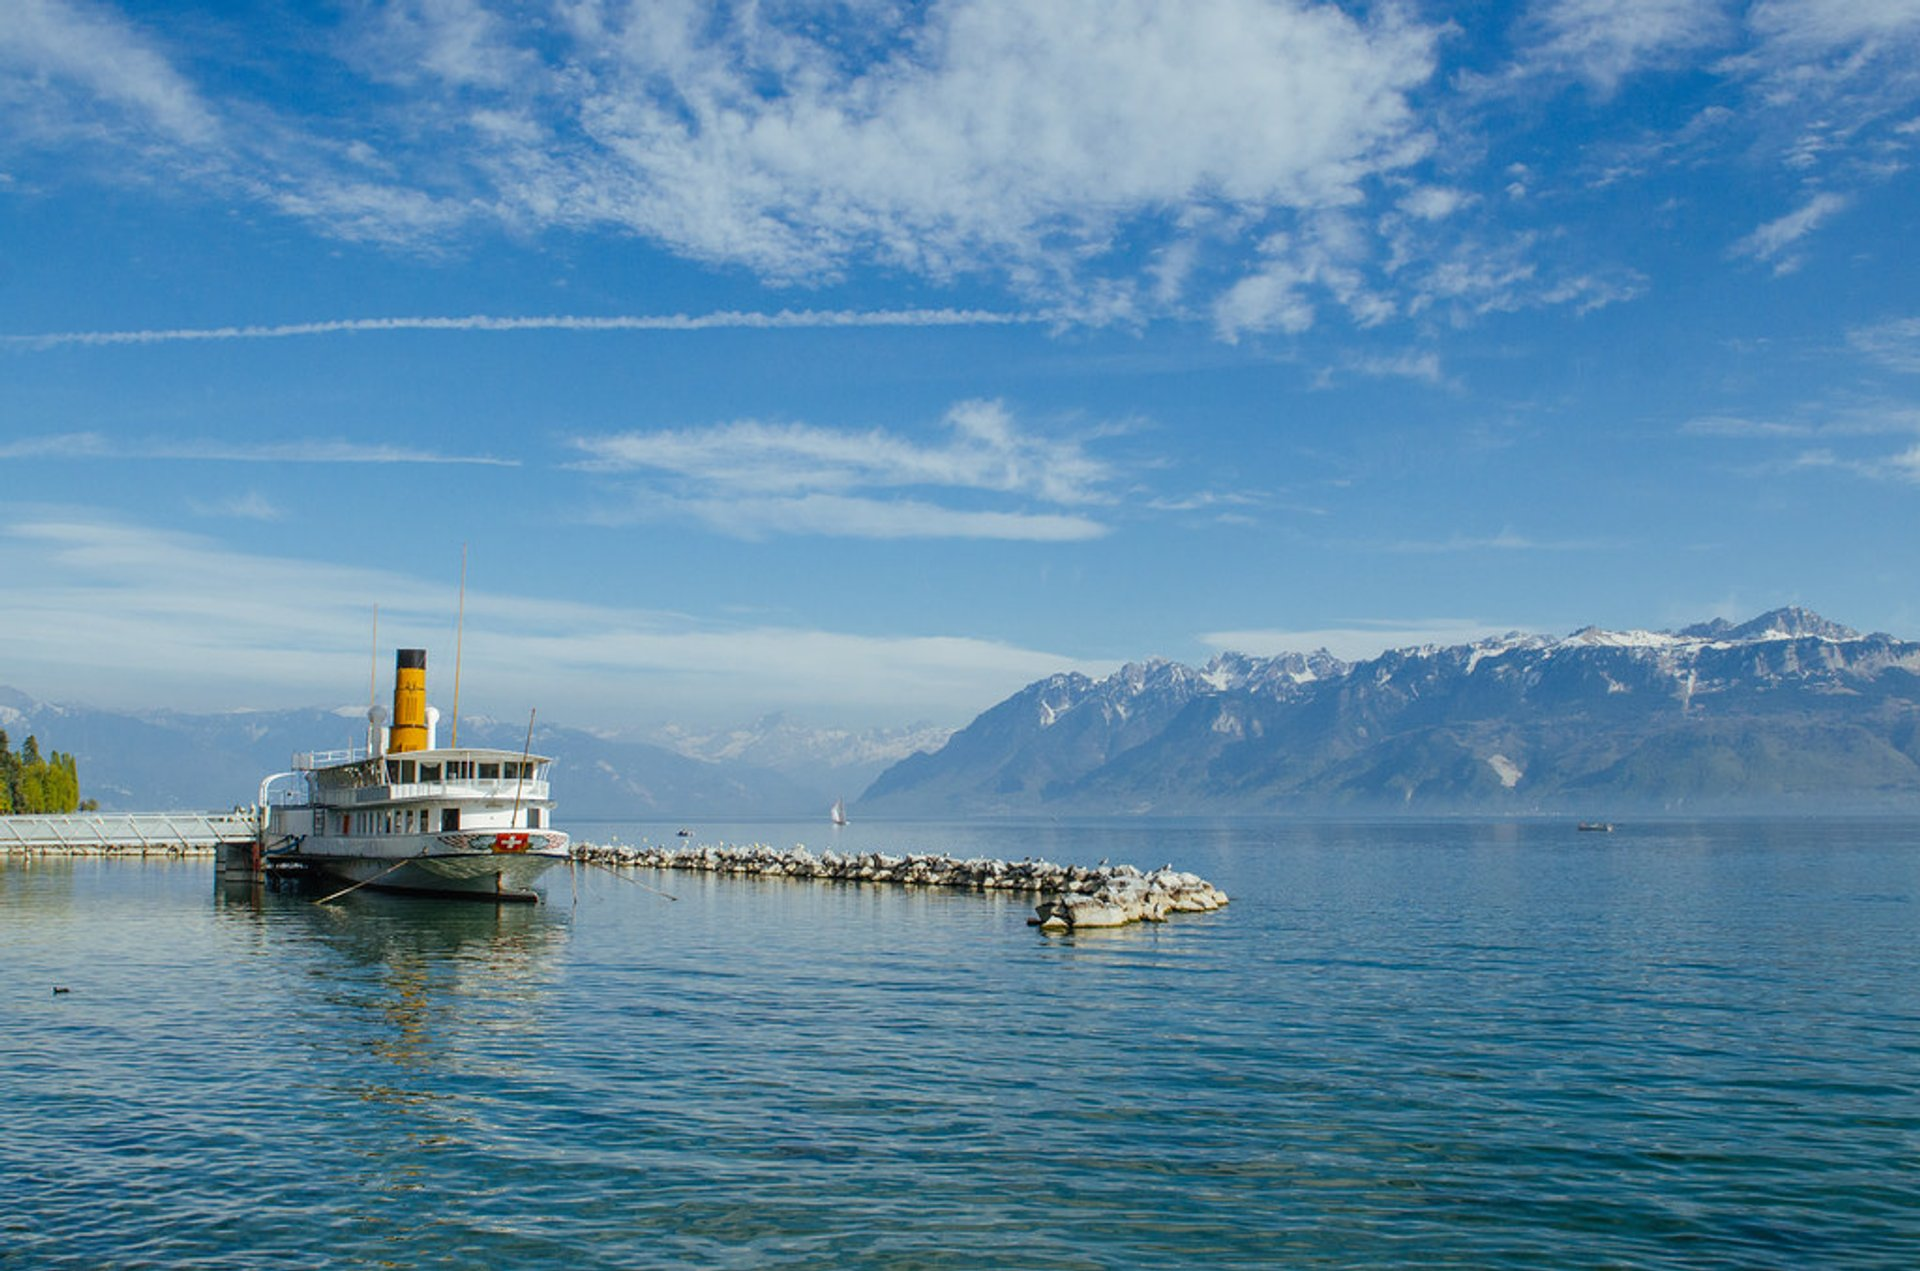 Lac Léman or Lake Geneva Cruise in Switzerland - Best Season 2020